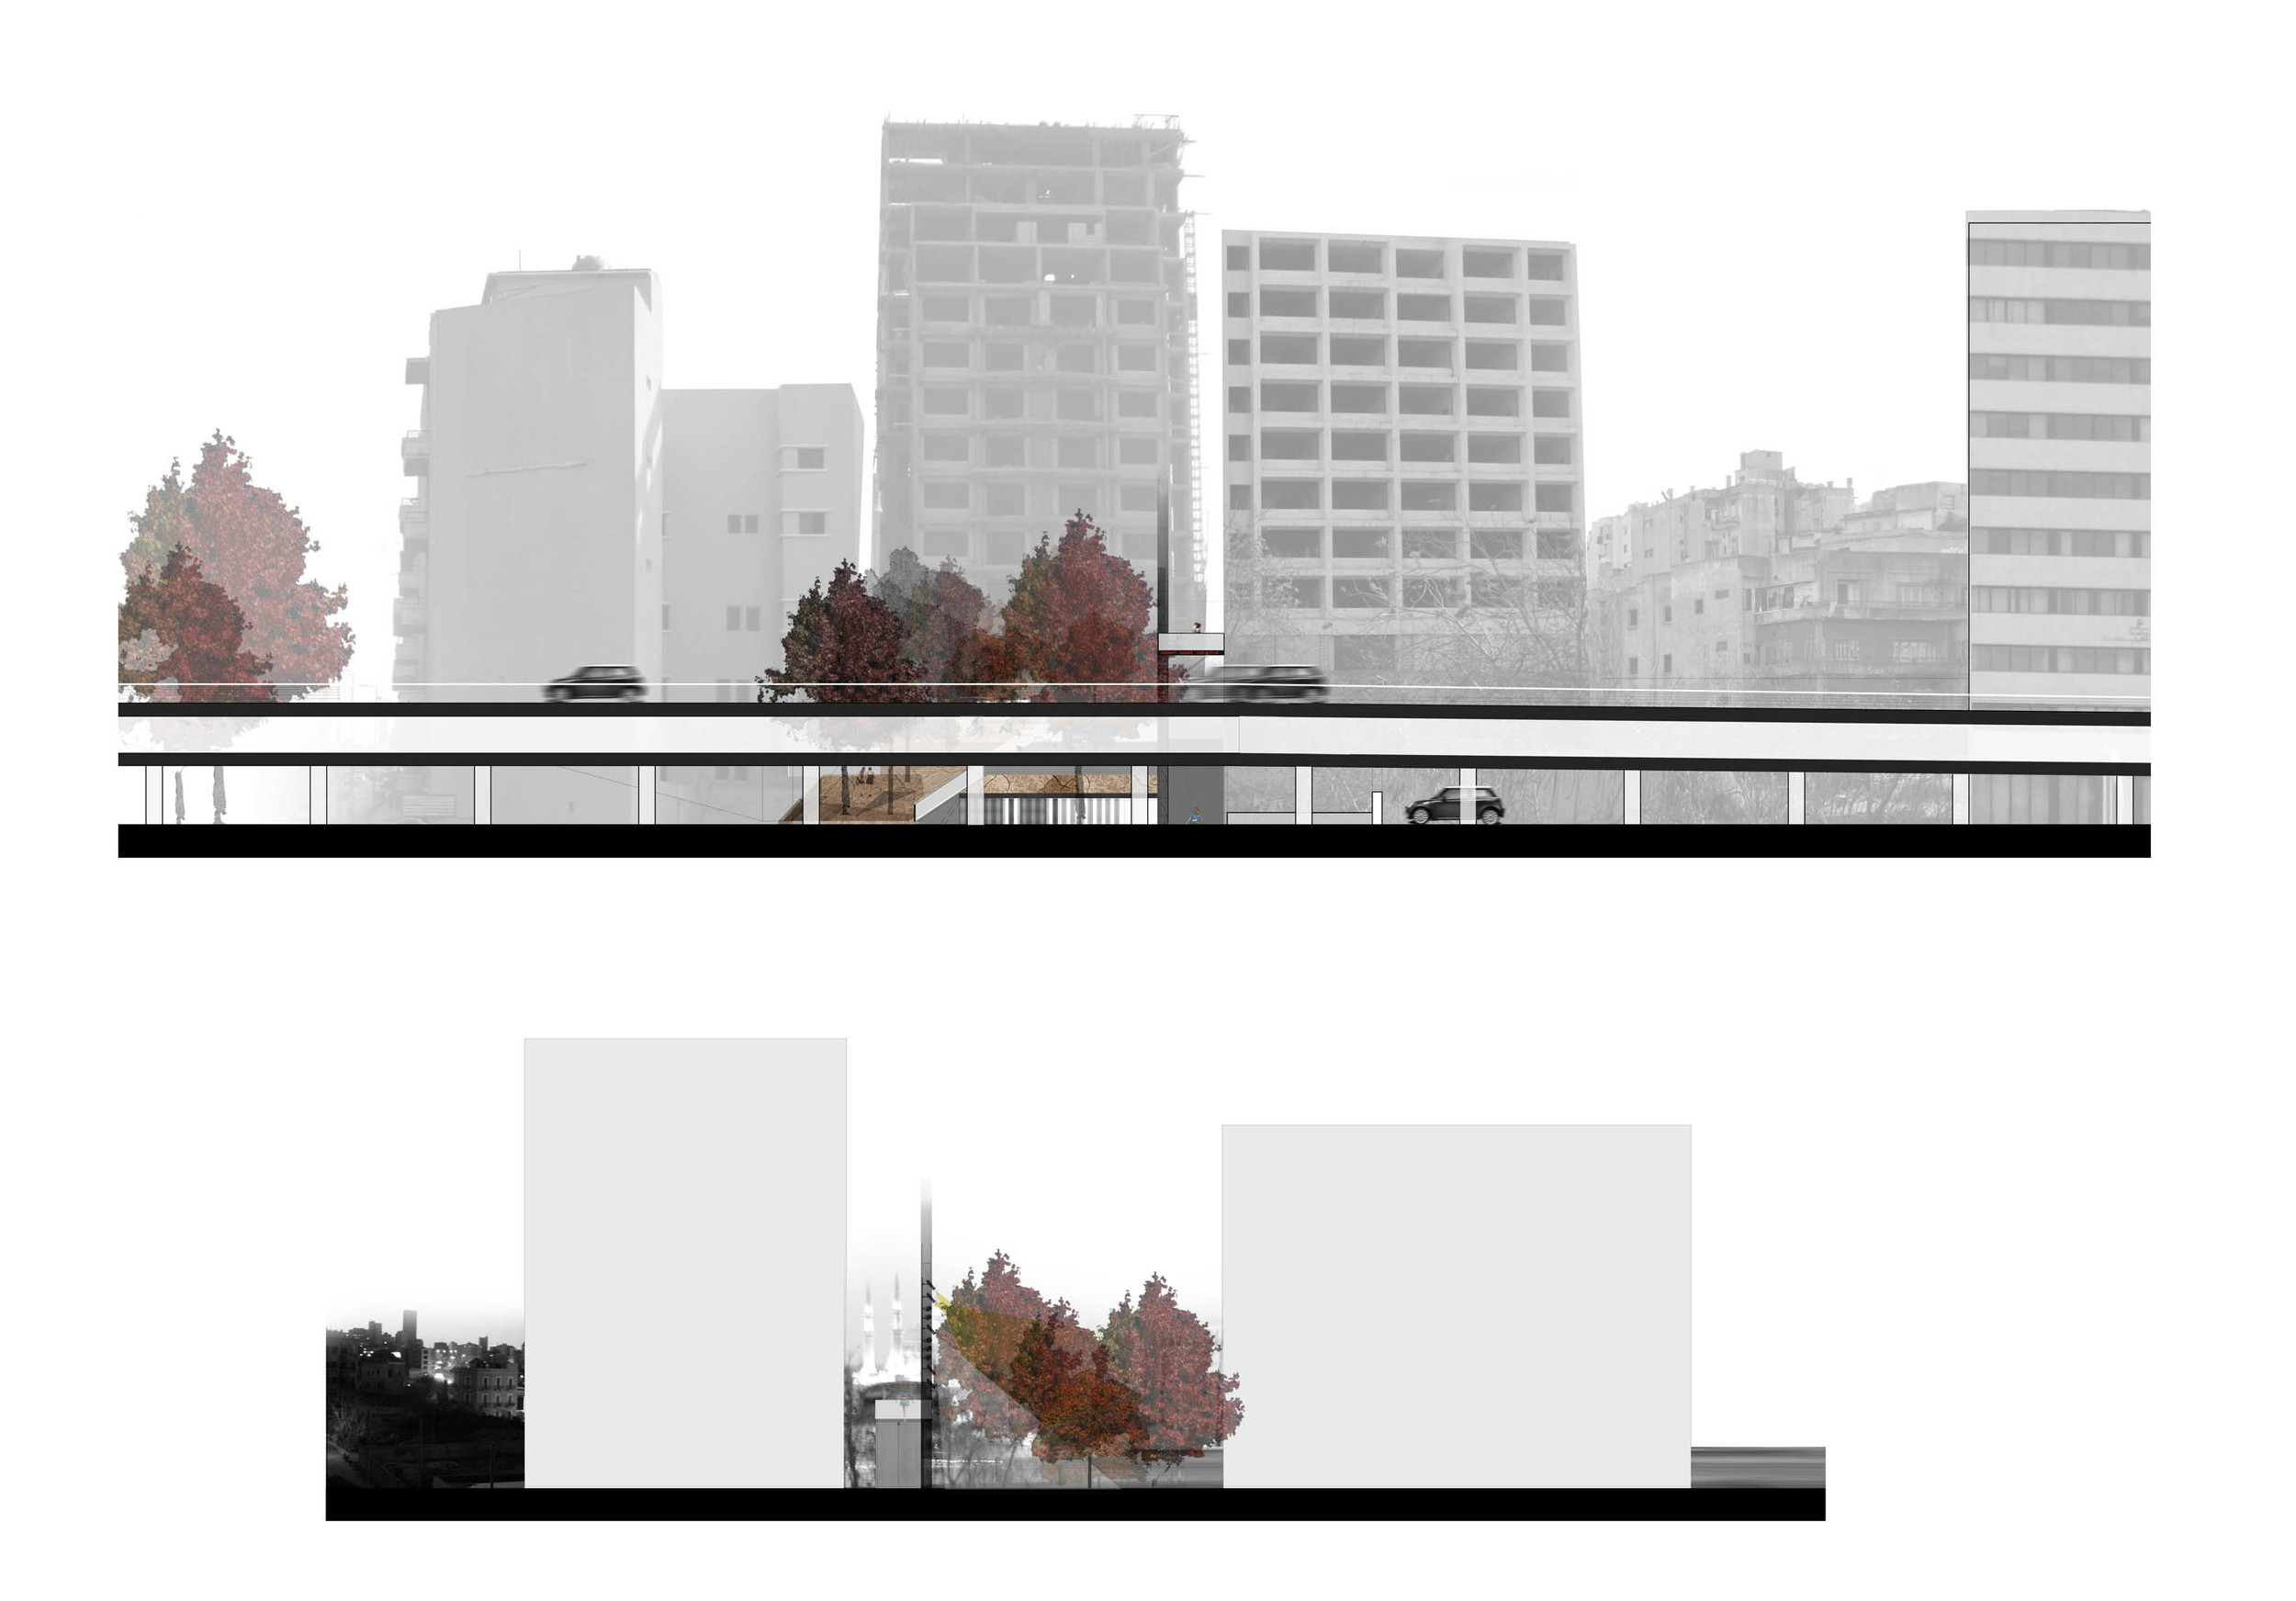 north elevation - view from highway  south elevation - street view from bachoura